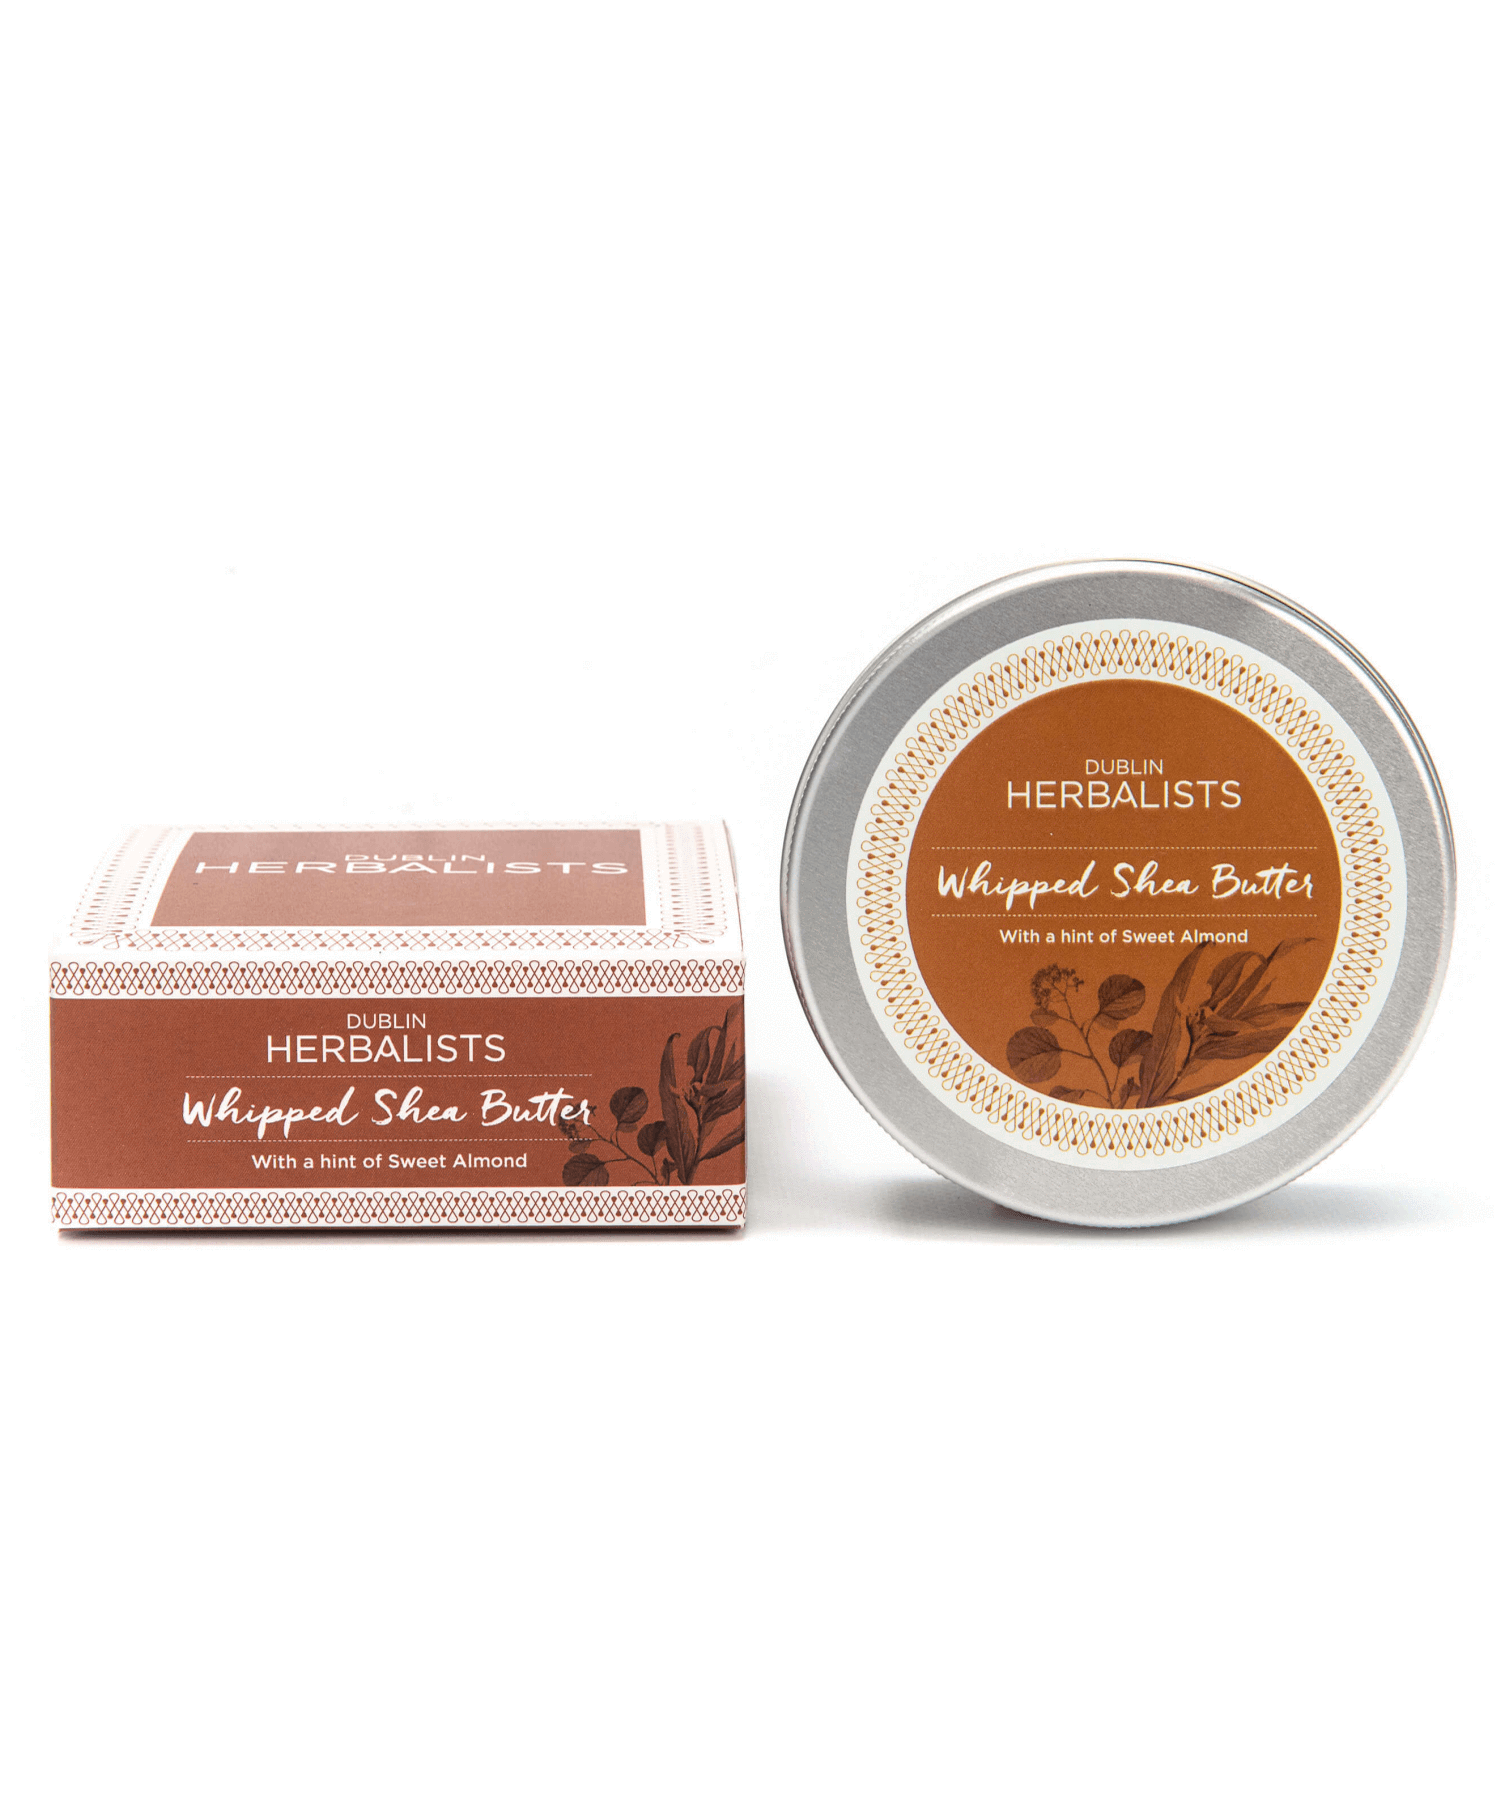 Whipped Shea Butter - [Dublin Herbalists] - Skincare & Beauty - Irish Gifts